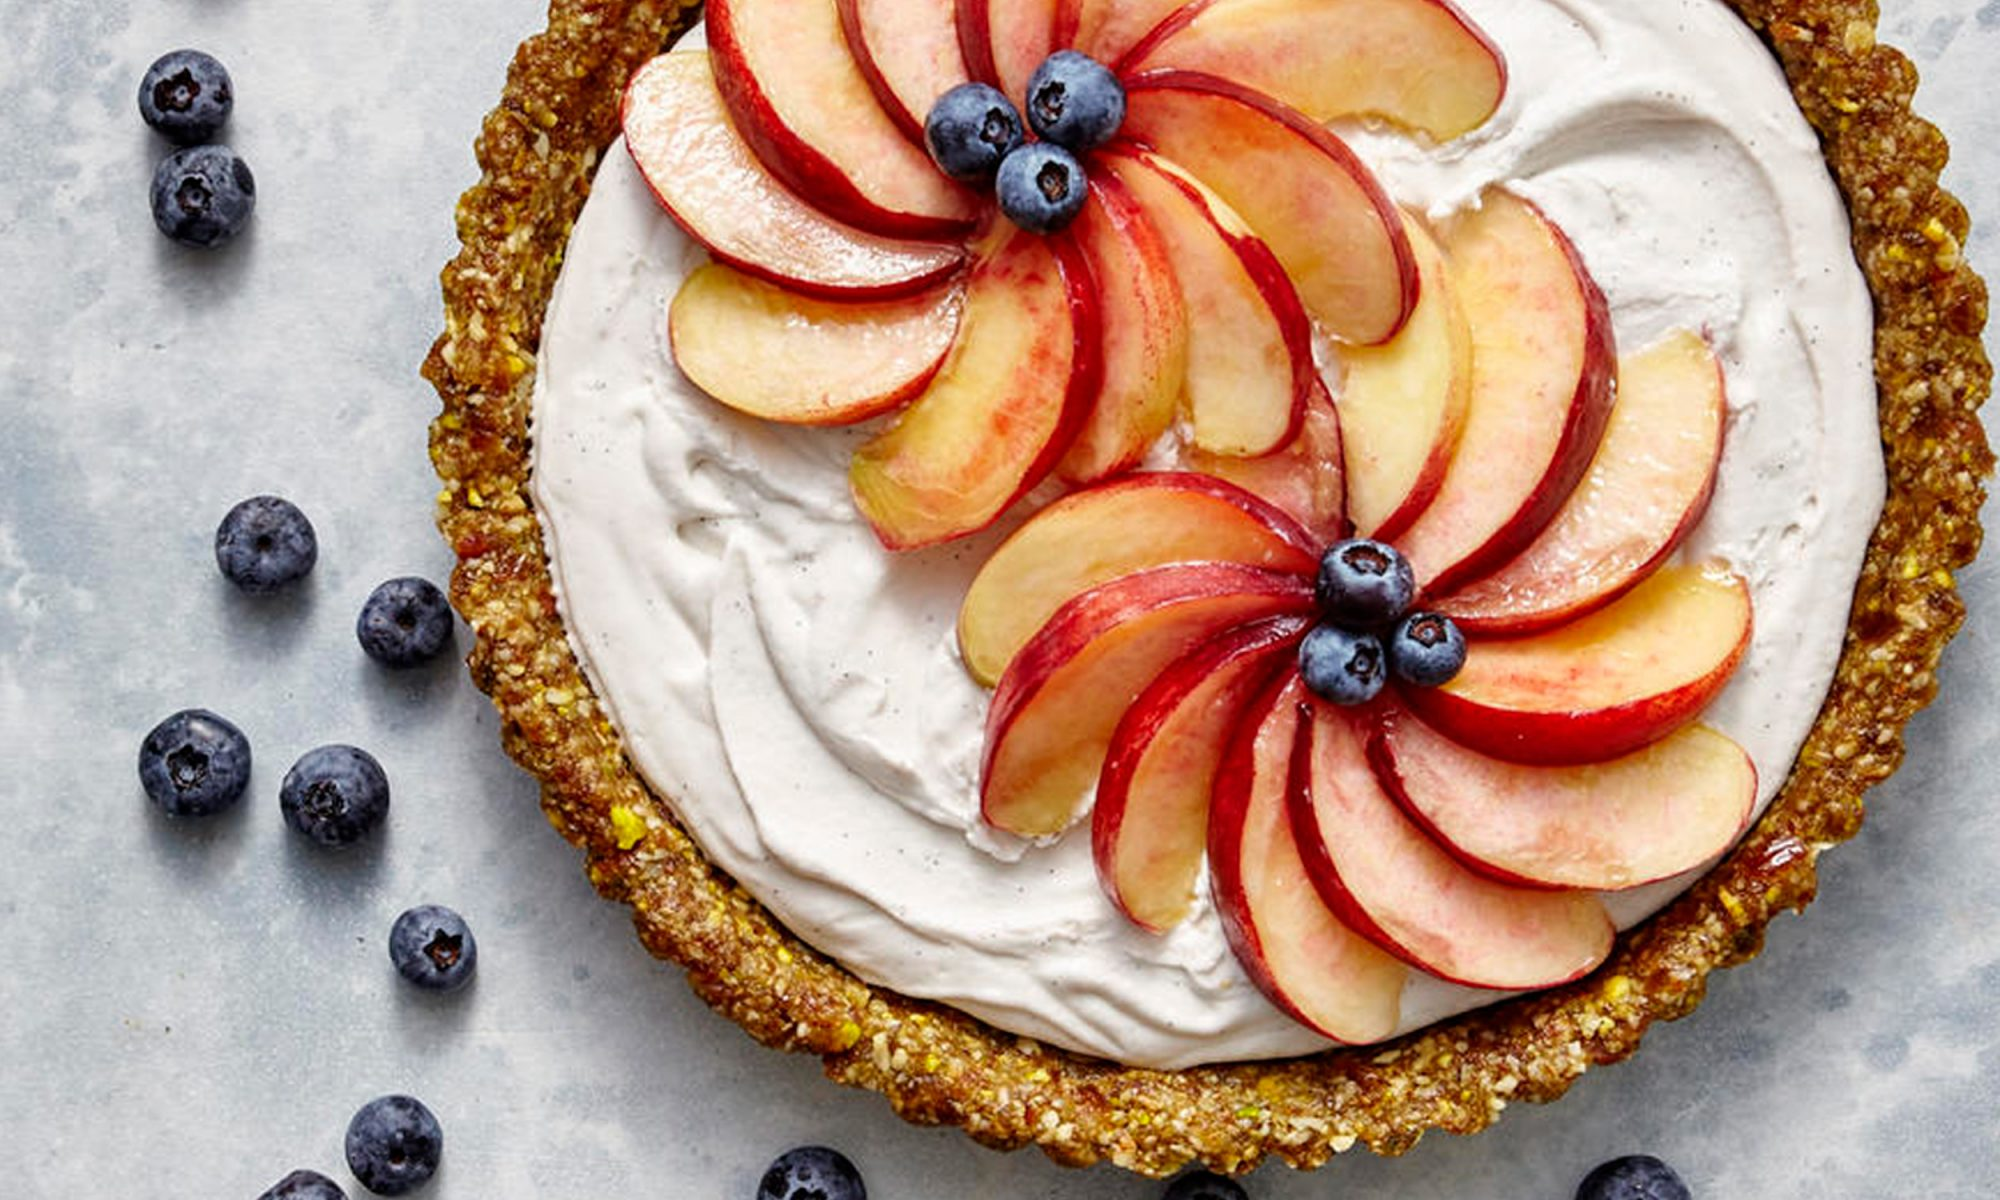 Vegan Coconut Cream Tart with White Peaches and Blueberries